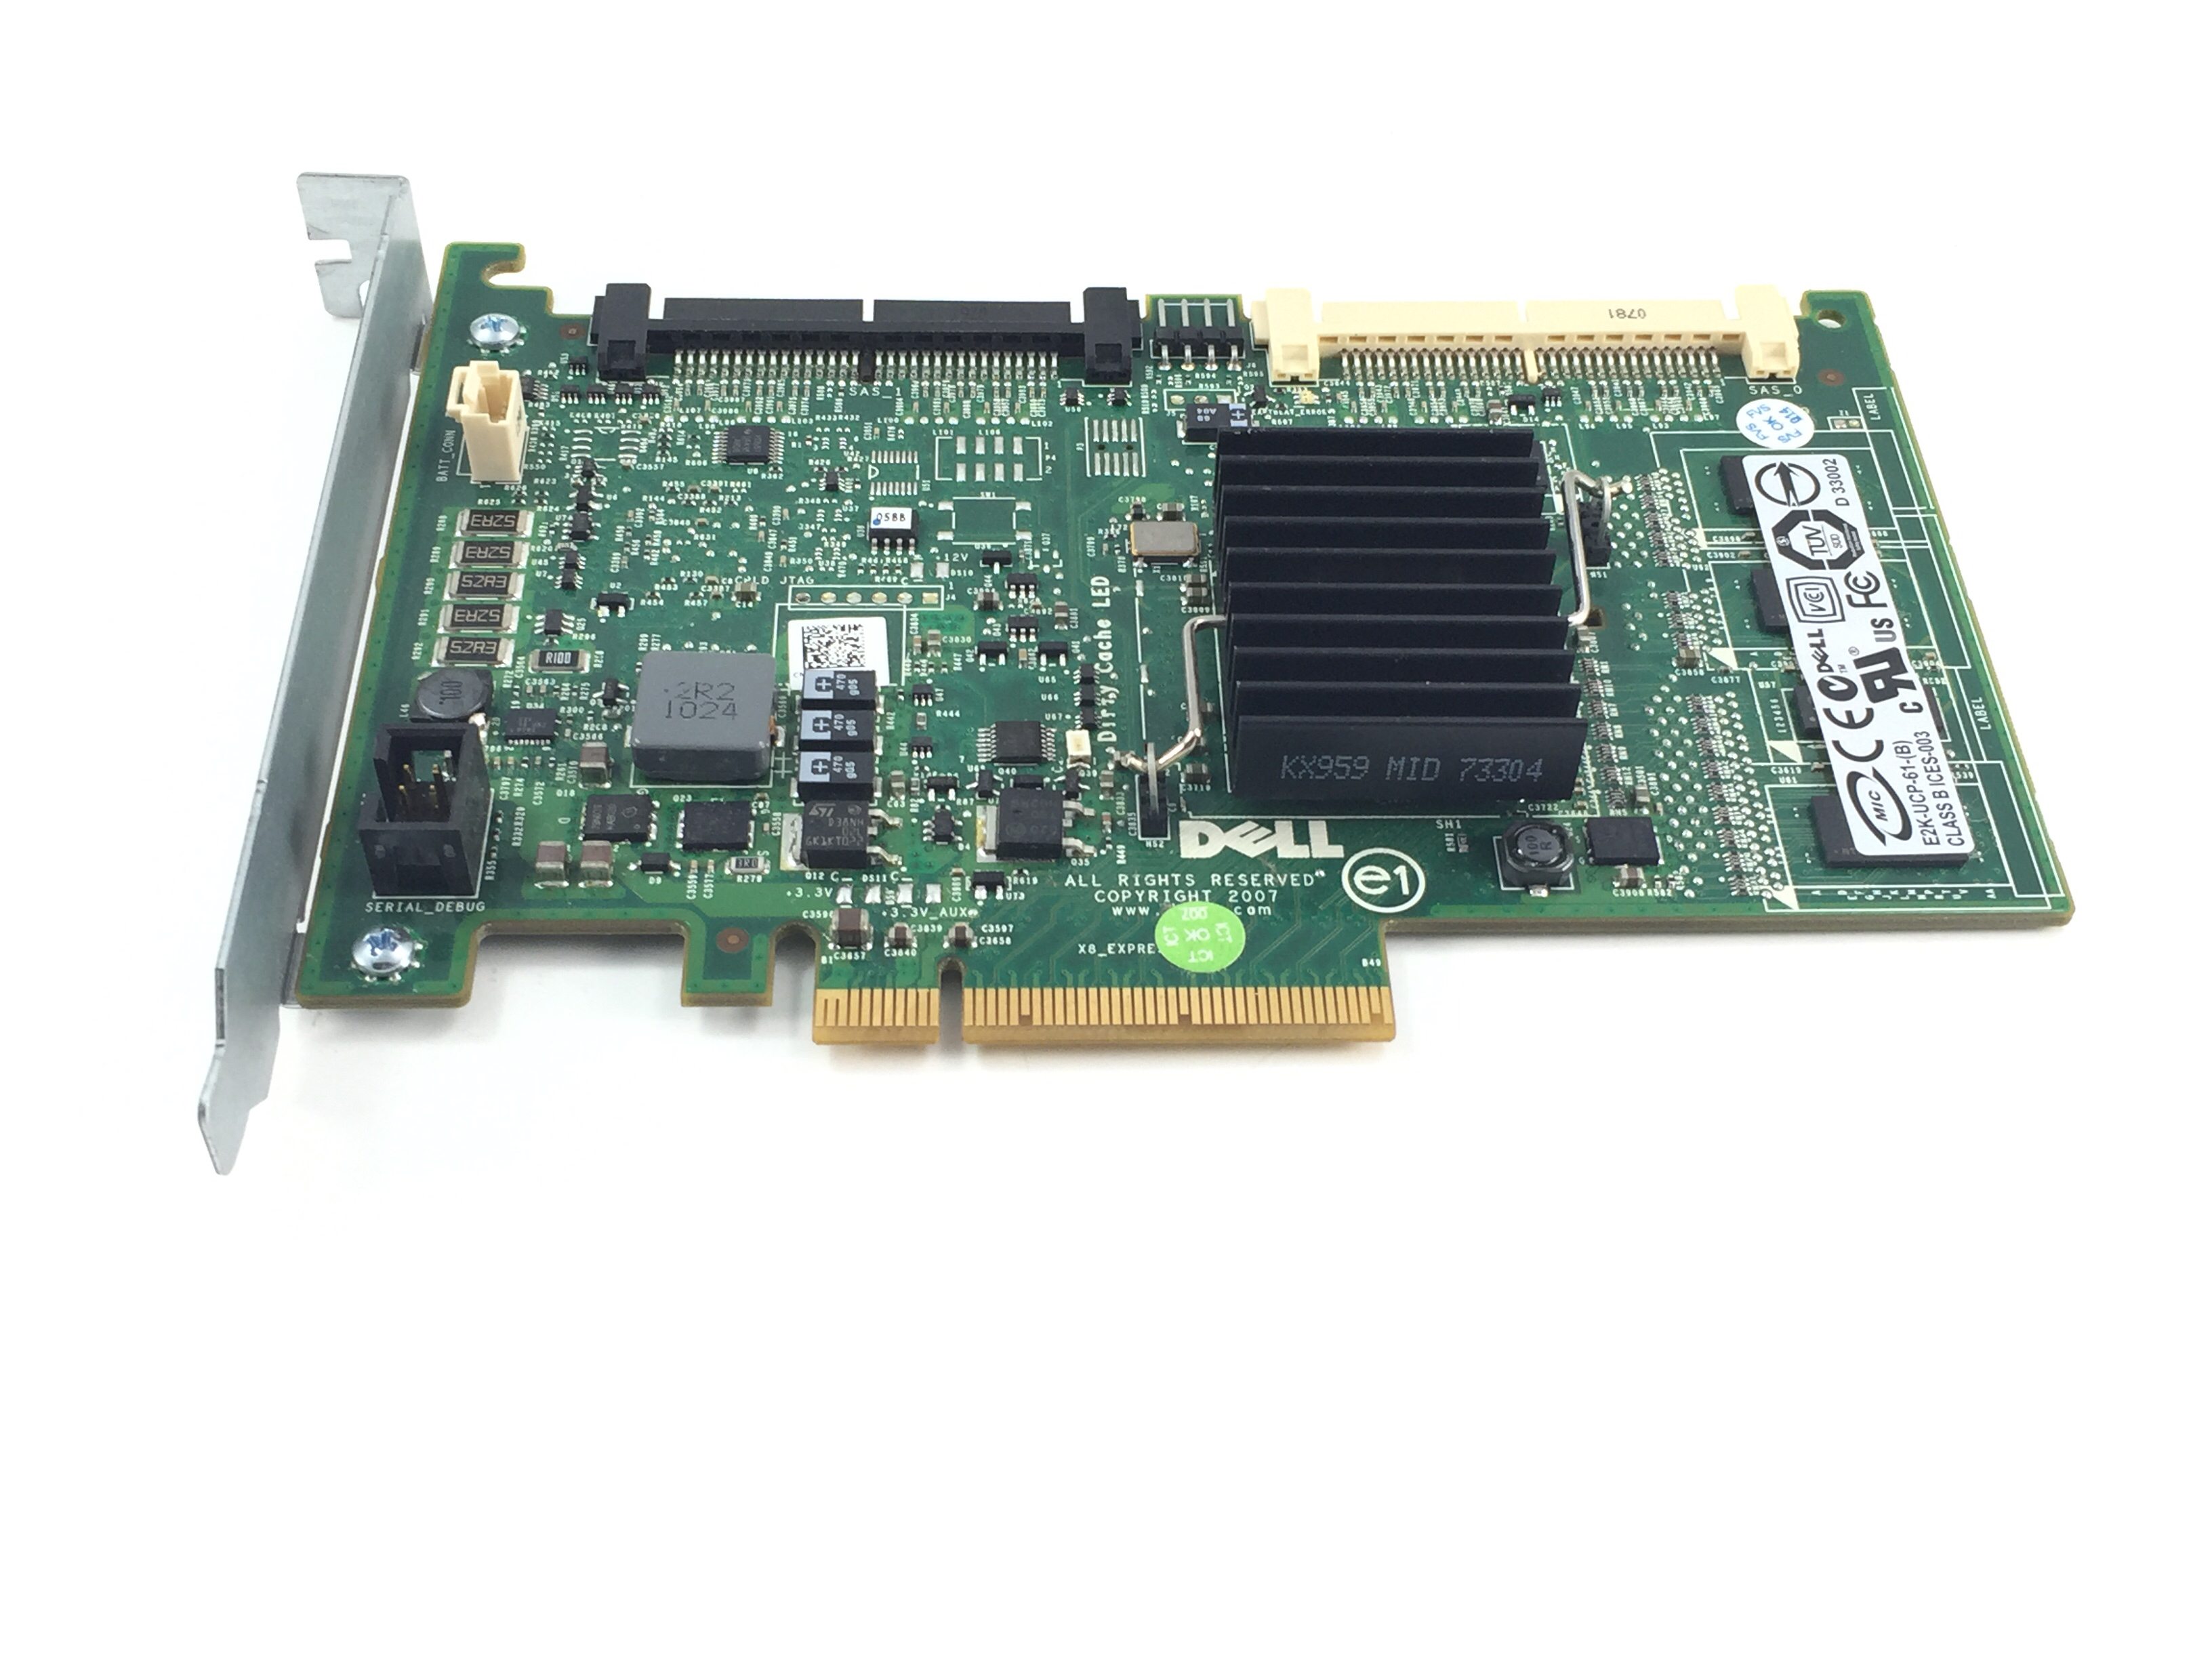 DELL POWEREDGE PERC 6/I SAS PCI-E RAID CONTROLLER (T774H)